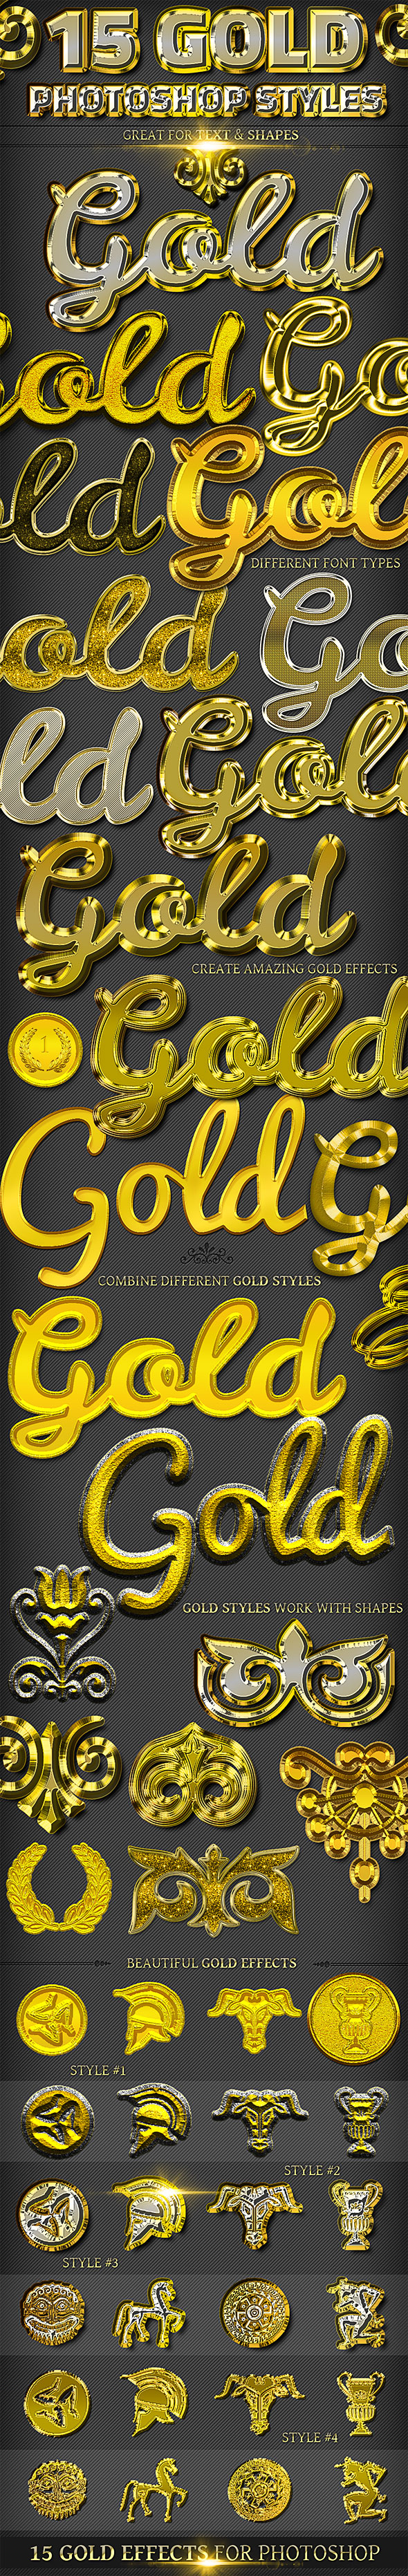 15 Gold Effect Photoshop Styles - Text Effects Styles